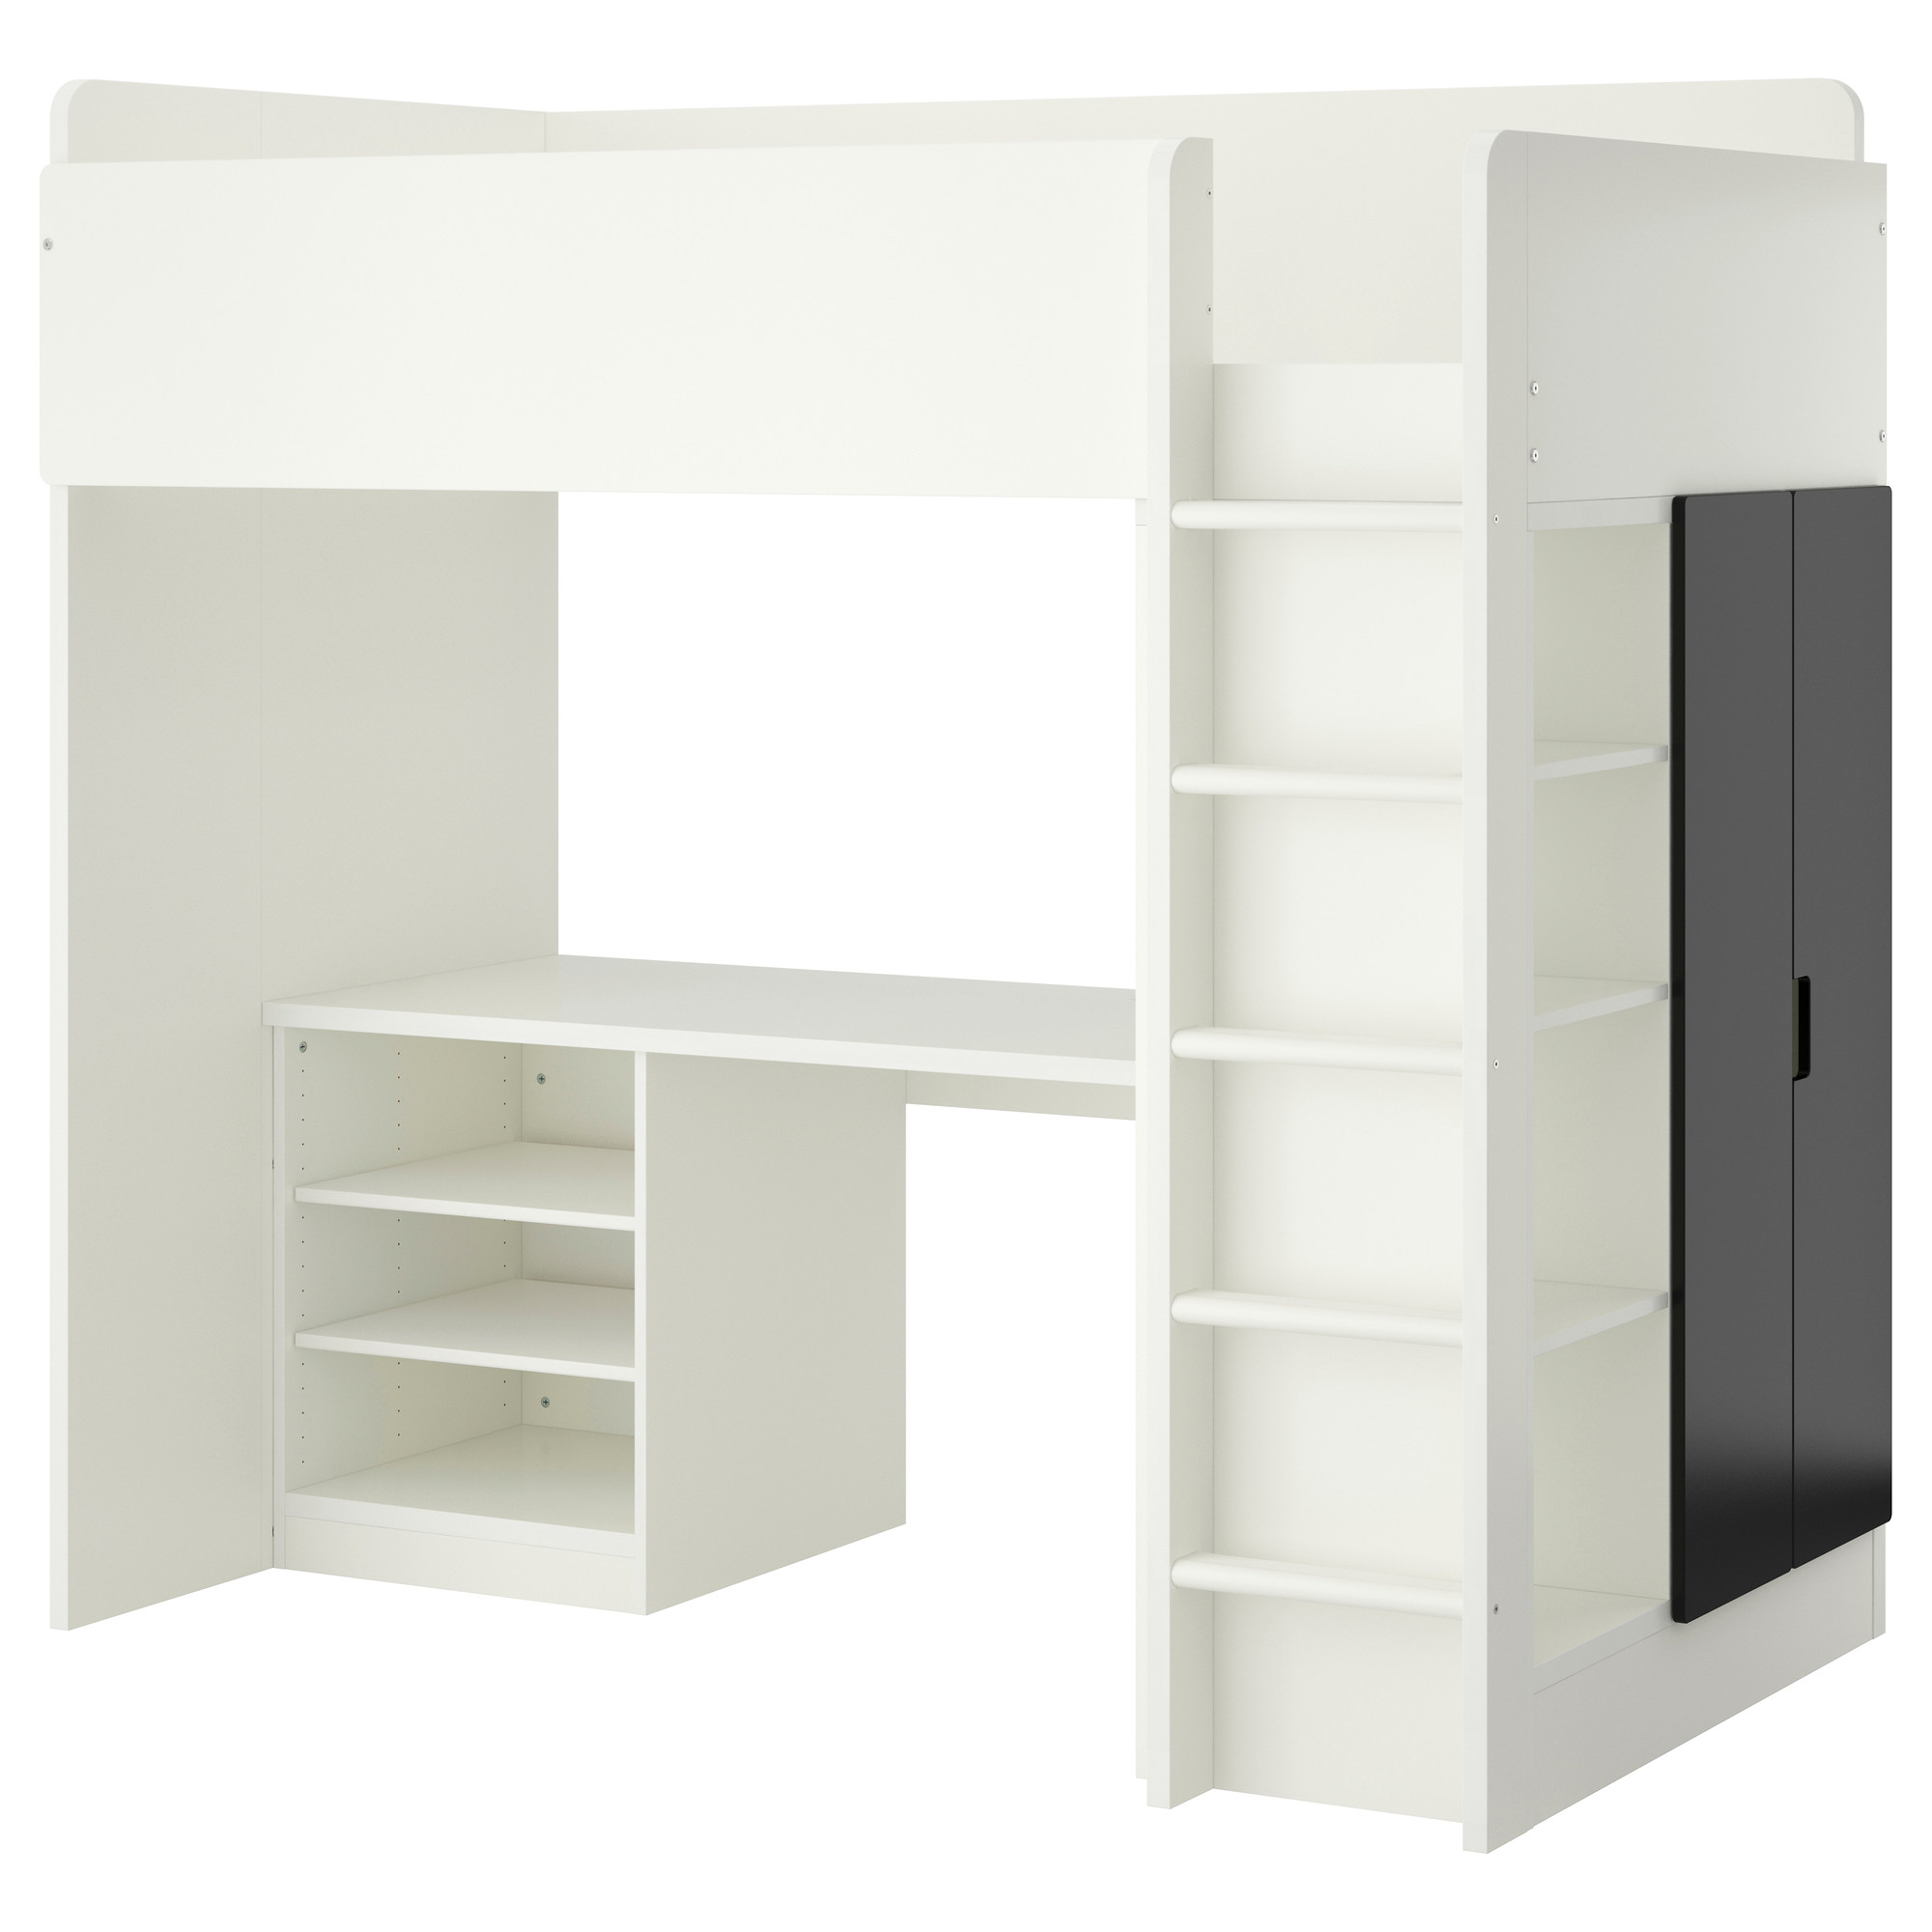 STUVA Loft Bed With 2 Shelves/2 Doors, White, Black Height: 76